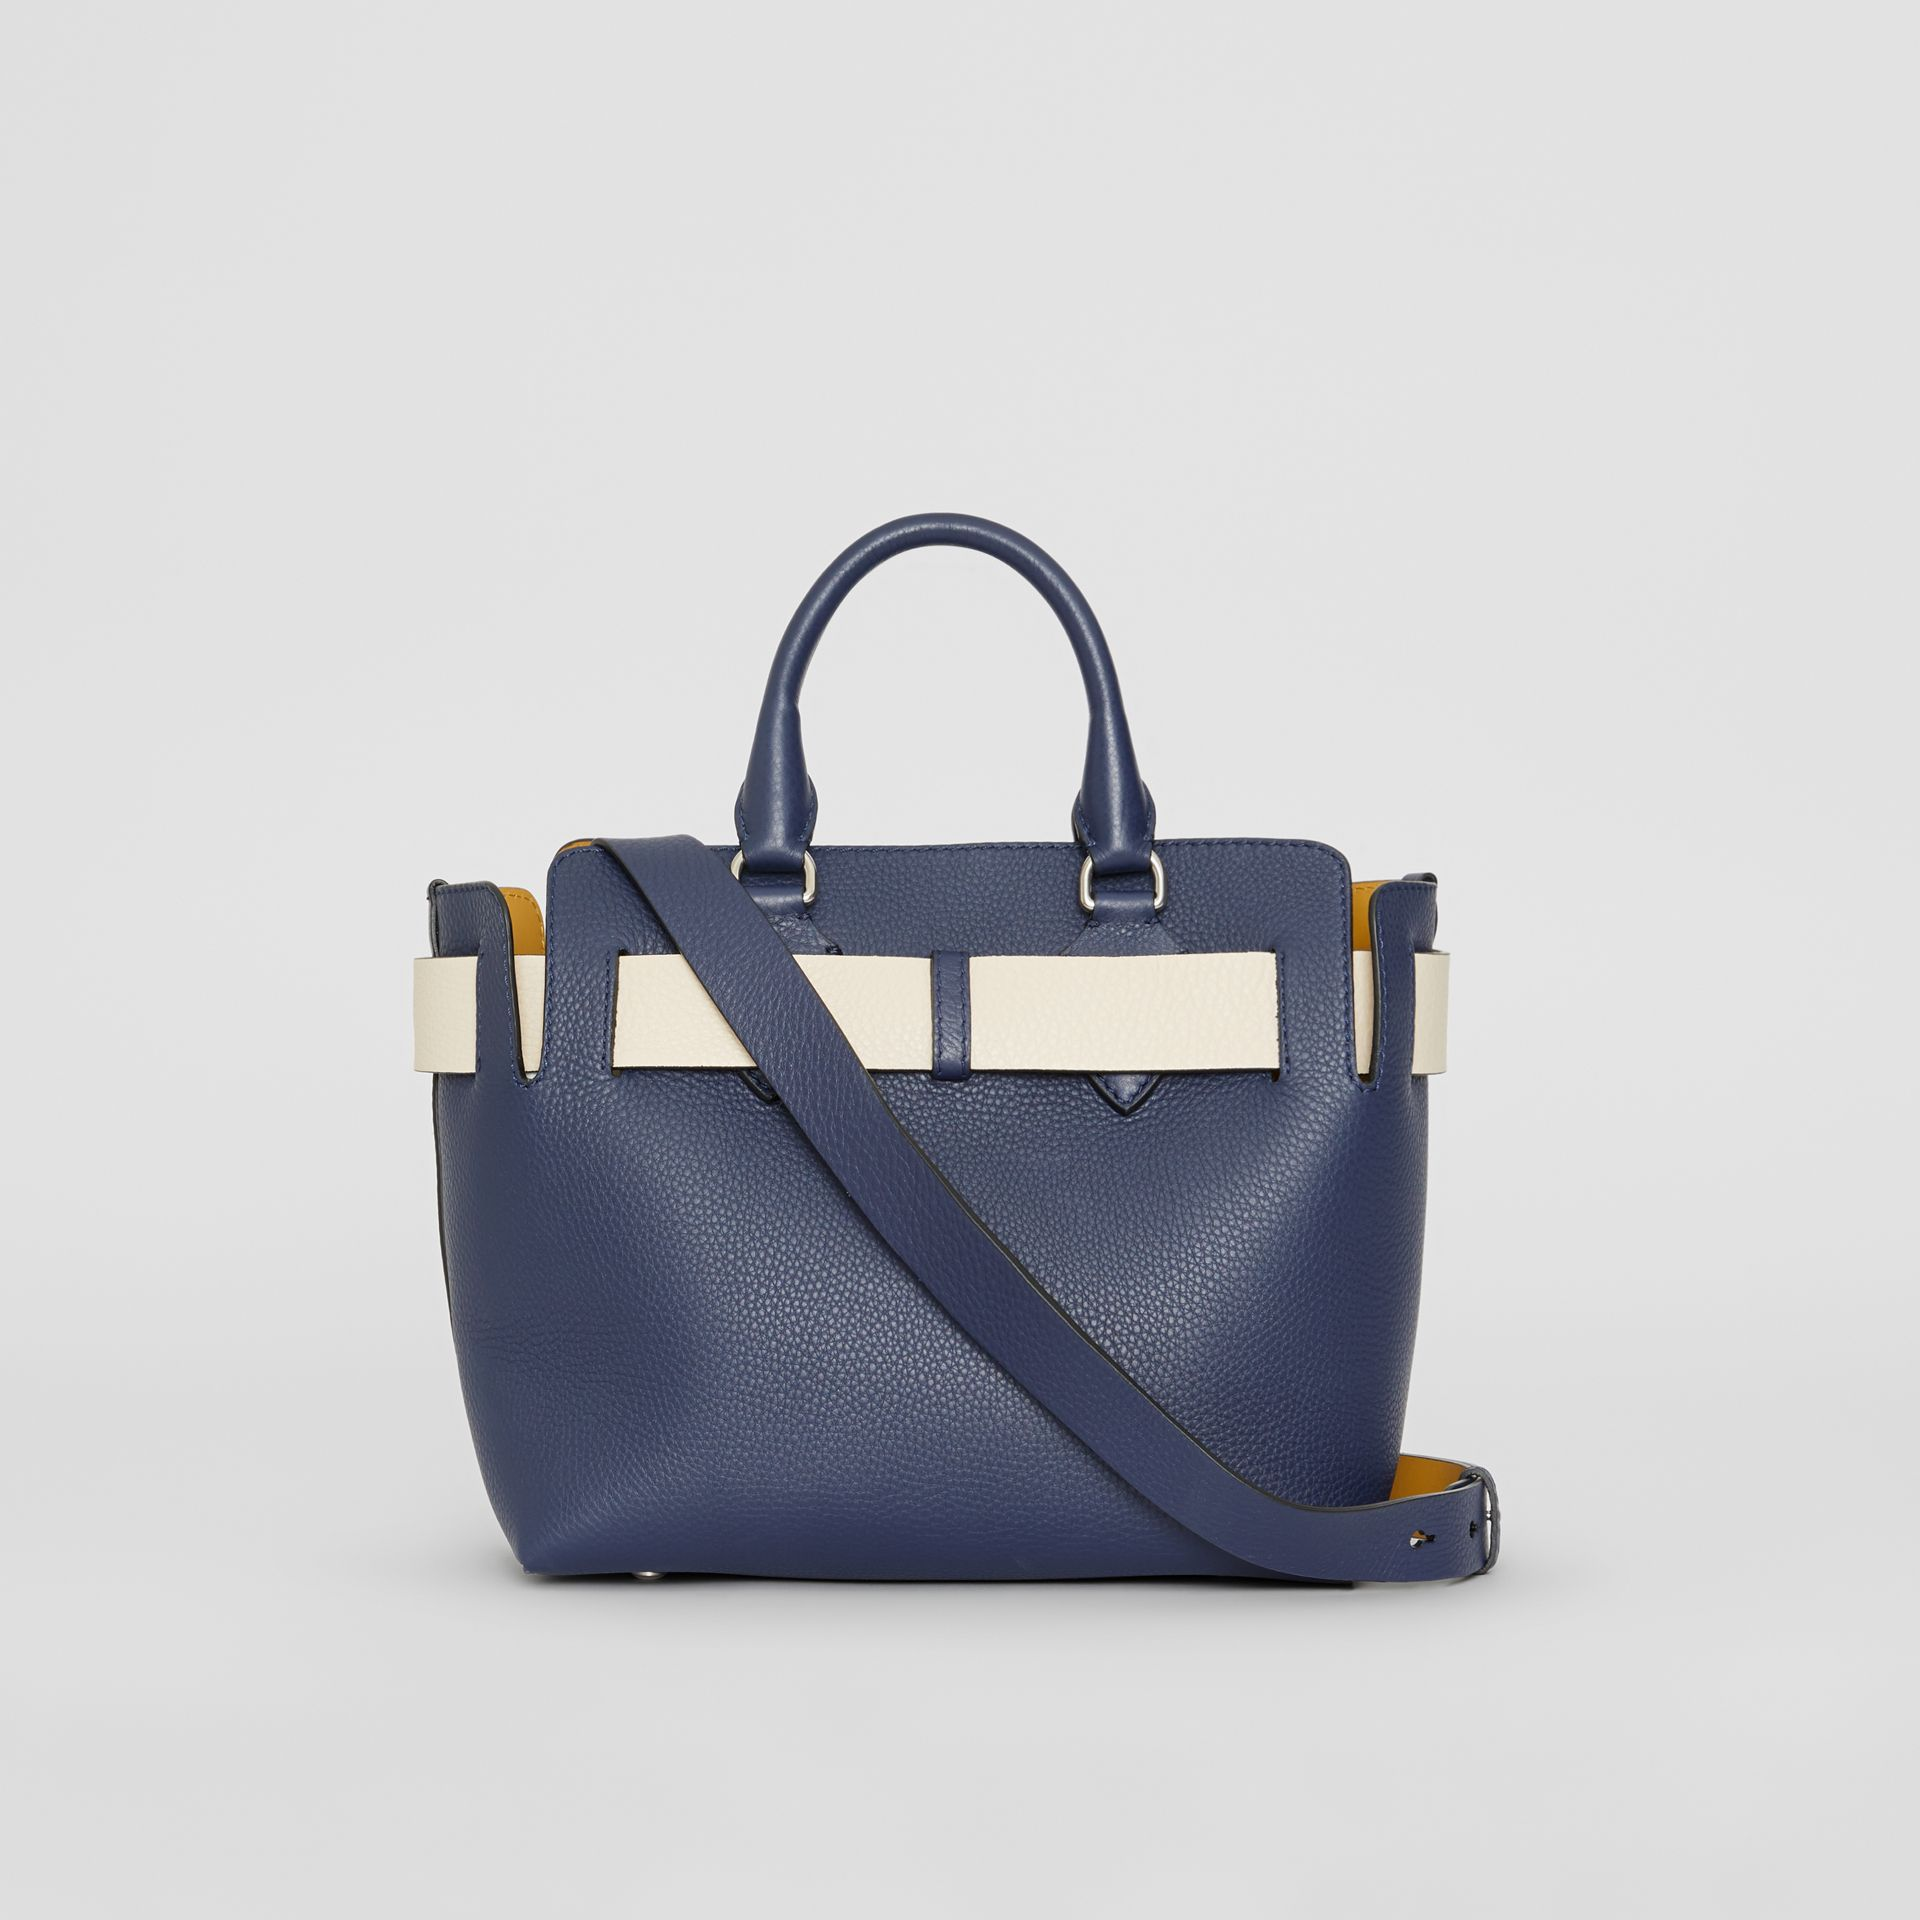 Petit sac The Belt en cuir (Bleu Régence) - Femme | Burberry - photo de la galerie 7